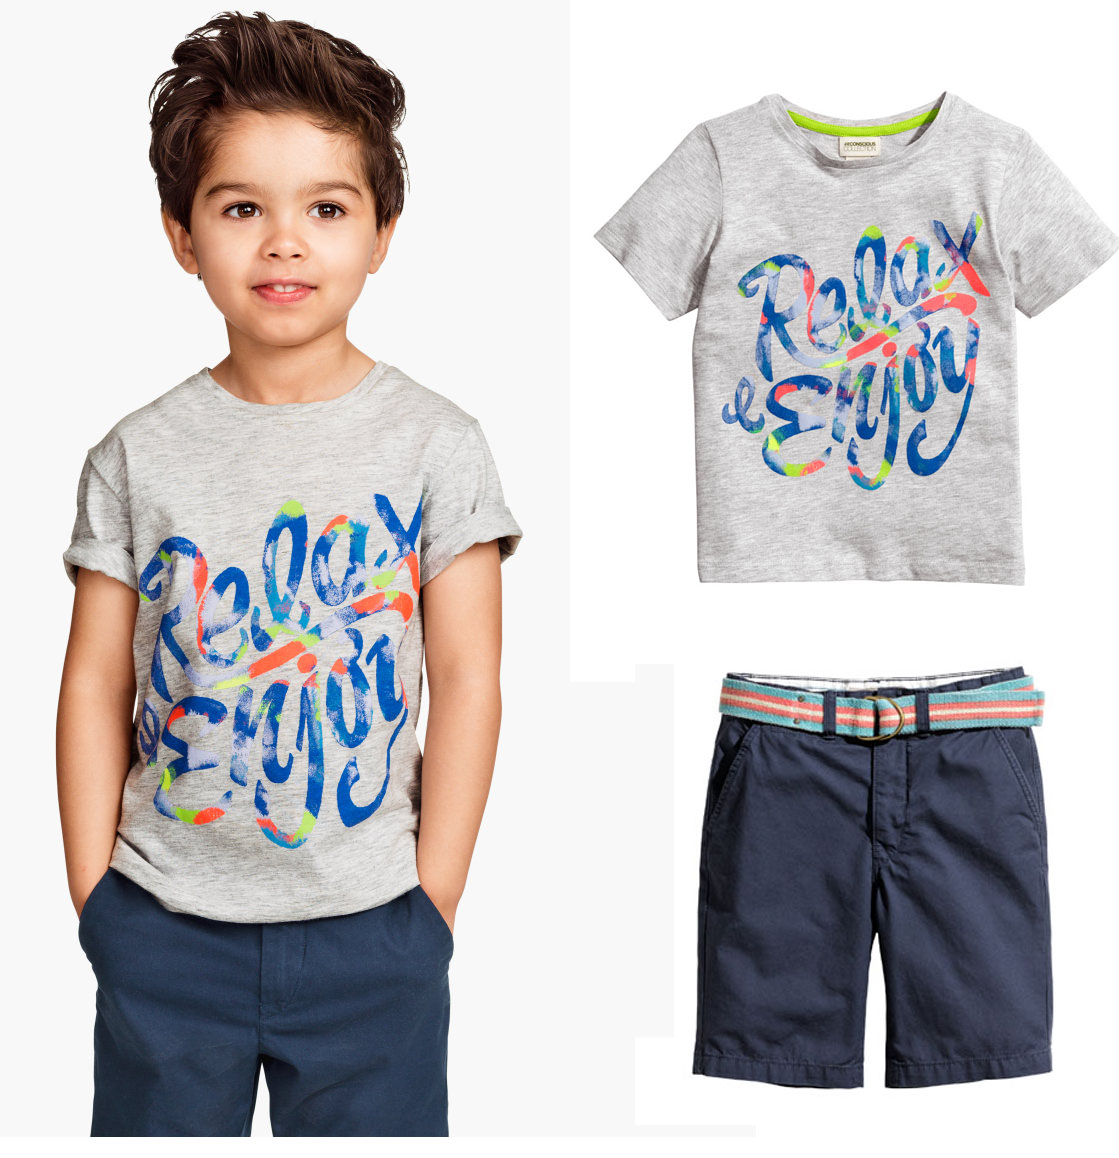 Outfit outdoorsy boys with boys' clothing from Cabela's. Shop hoodies, pants, tee shirts, jeans and more from brands like Cabela's, The North Face, Columbia, Frogg Toggs, Under Armour and Obermeyer.